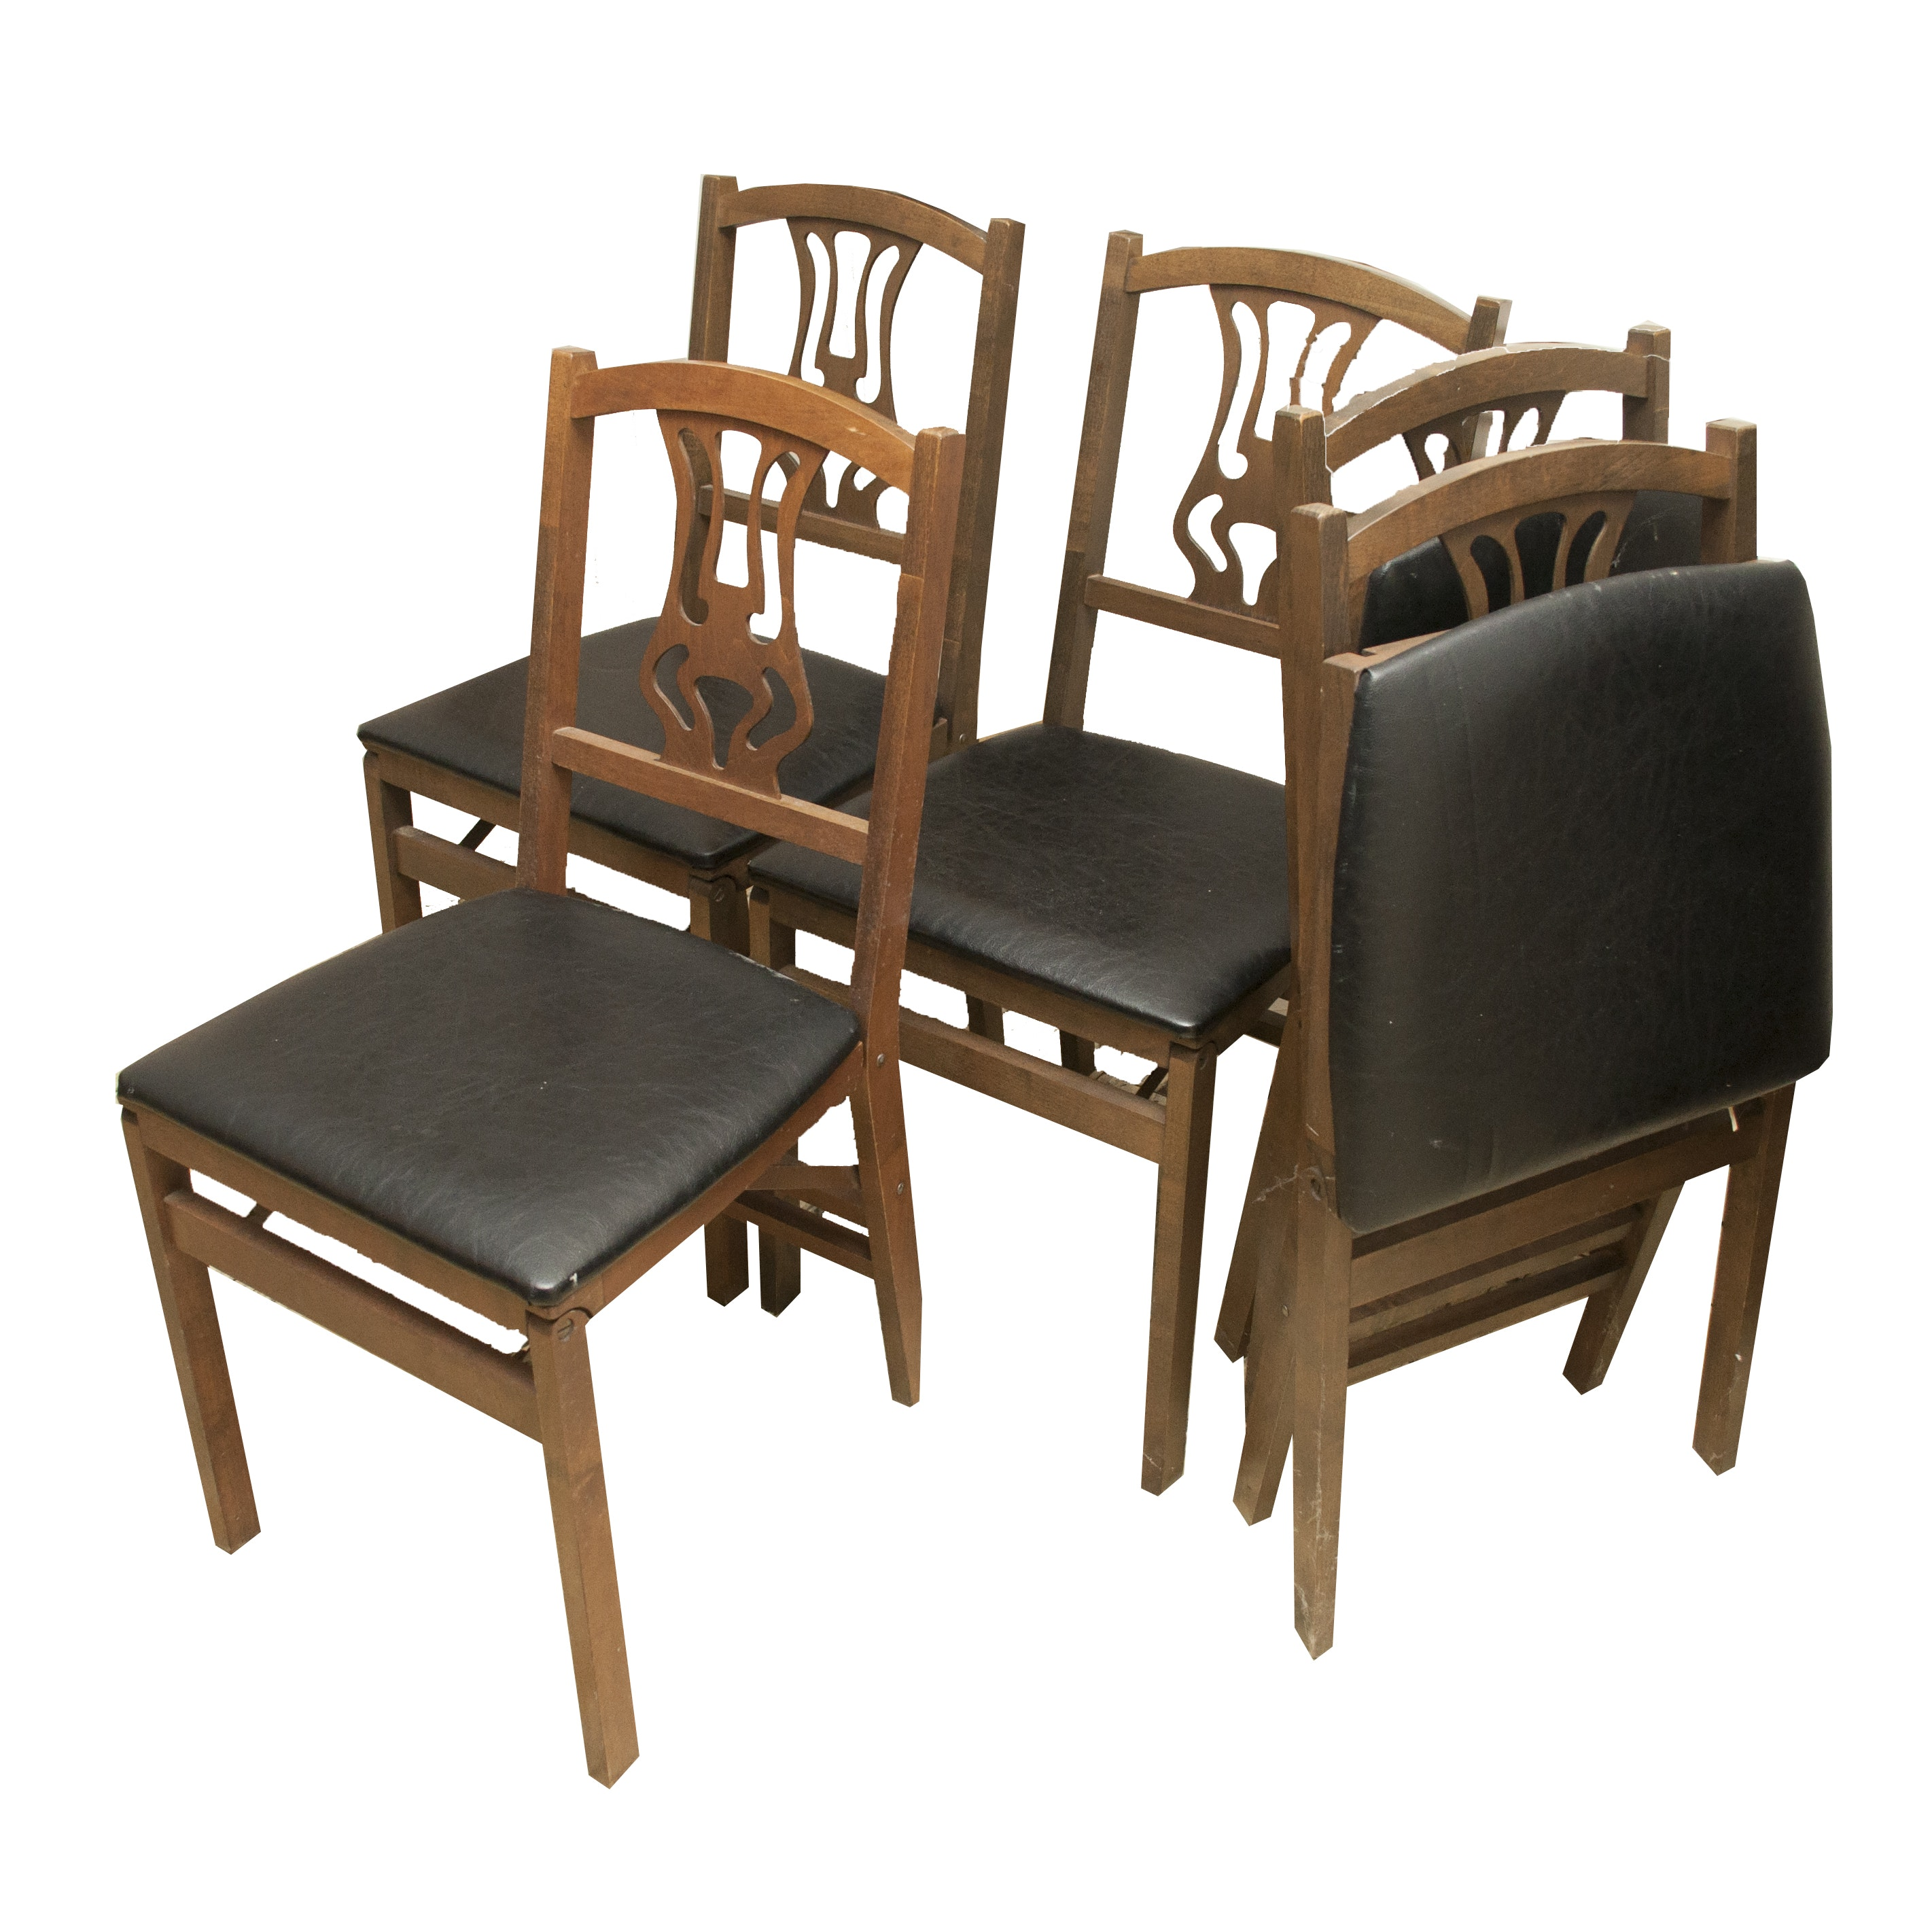 Vintage Folding Chairs